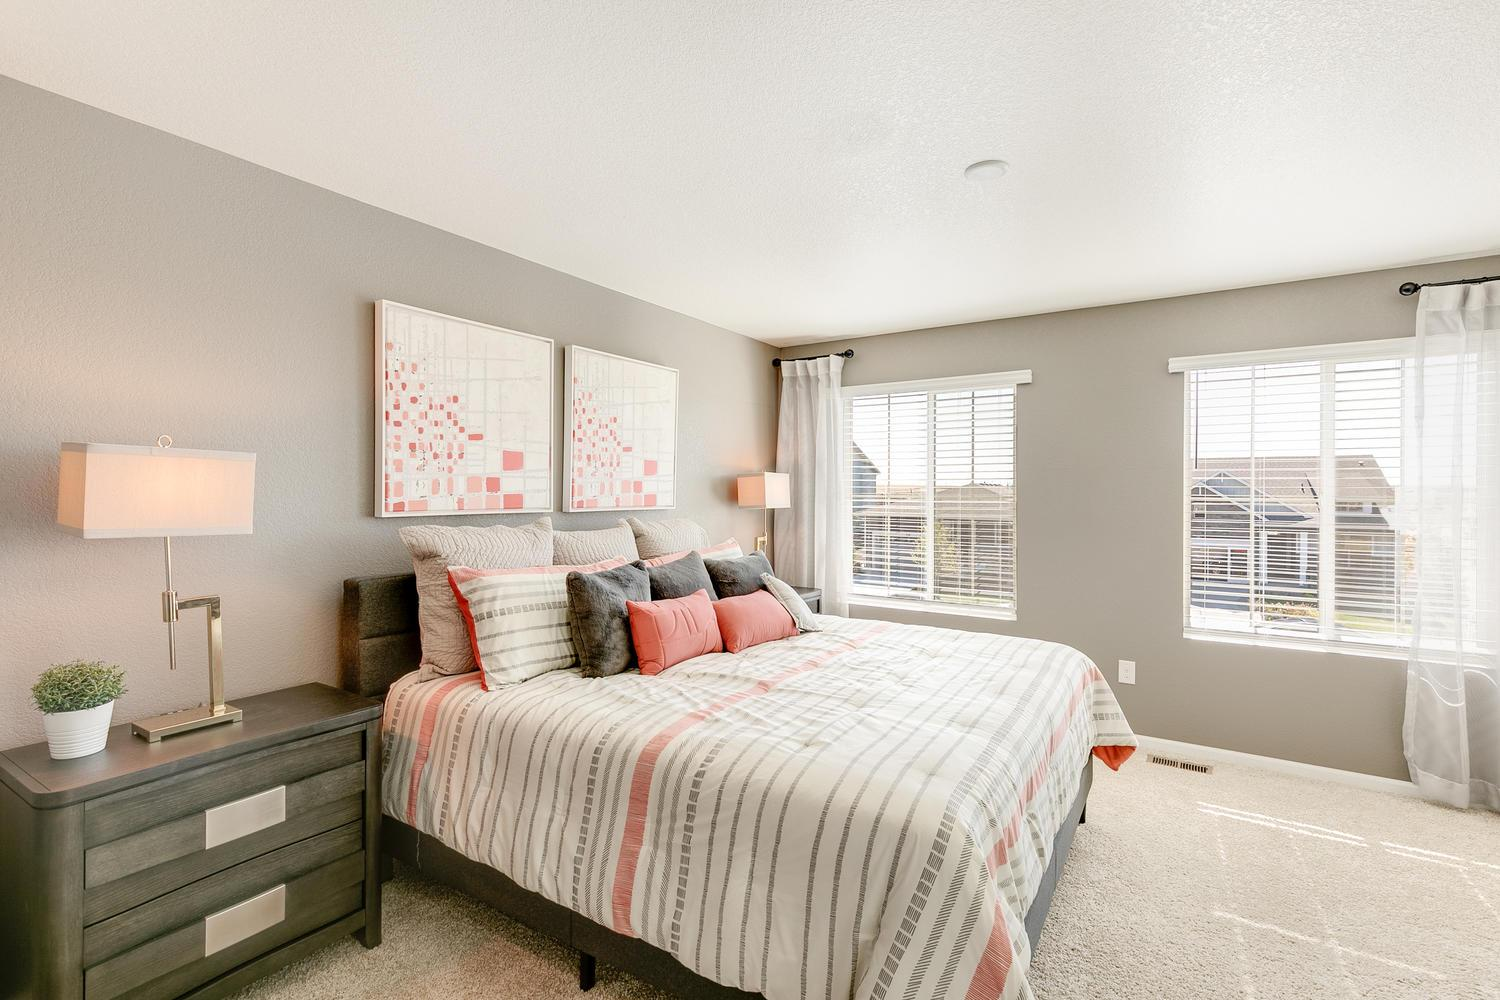 Bedroom featured in the HIKE By D.R. Horton in Denver, CO